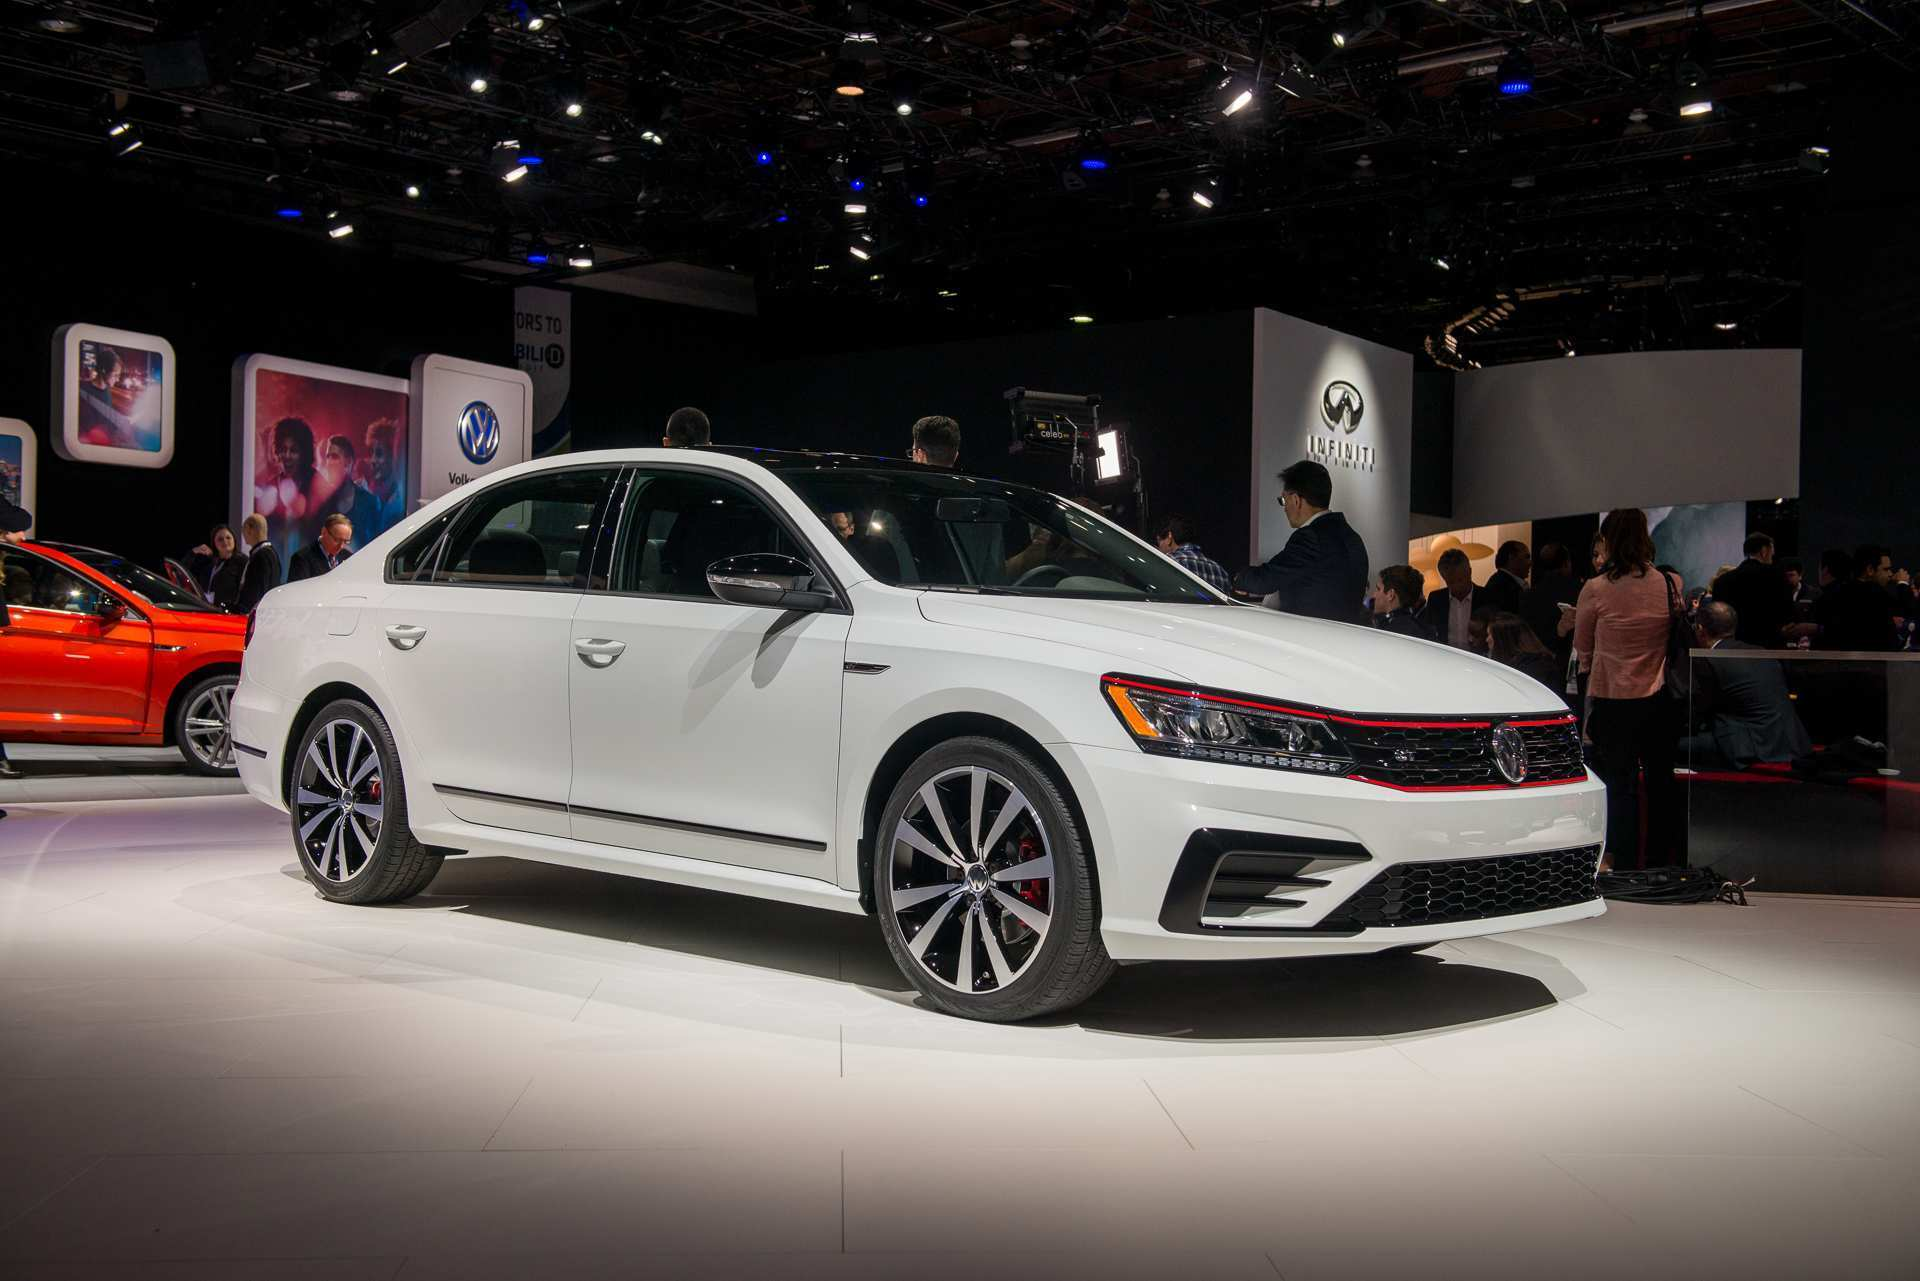 62 Concept of 2019 Vw Passat Gt History by 2019 Vw Passat Gt